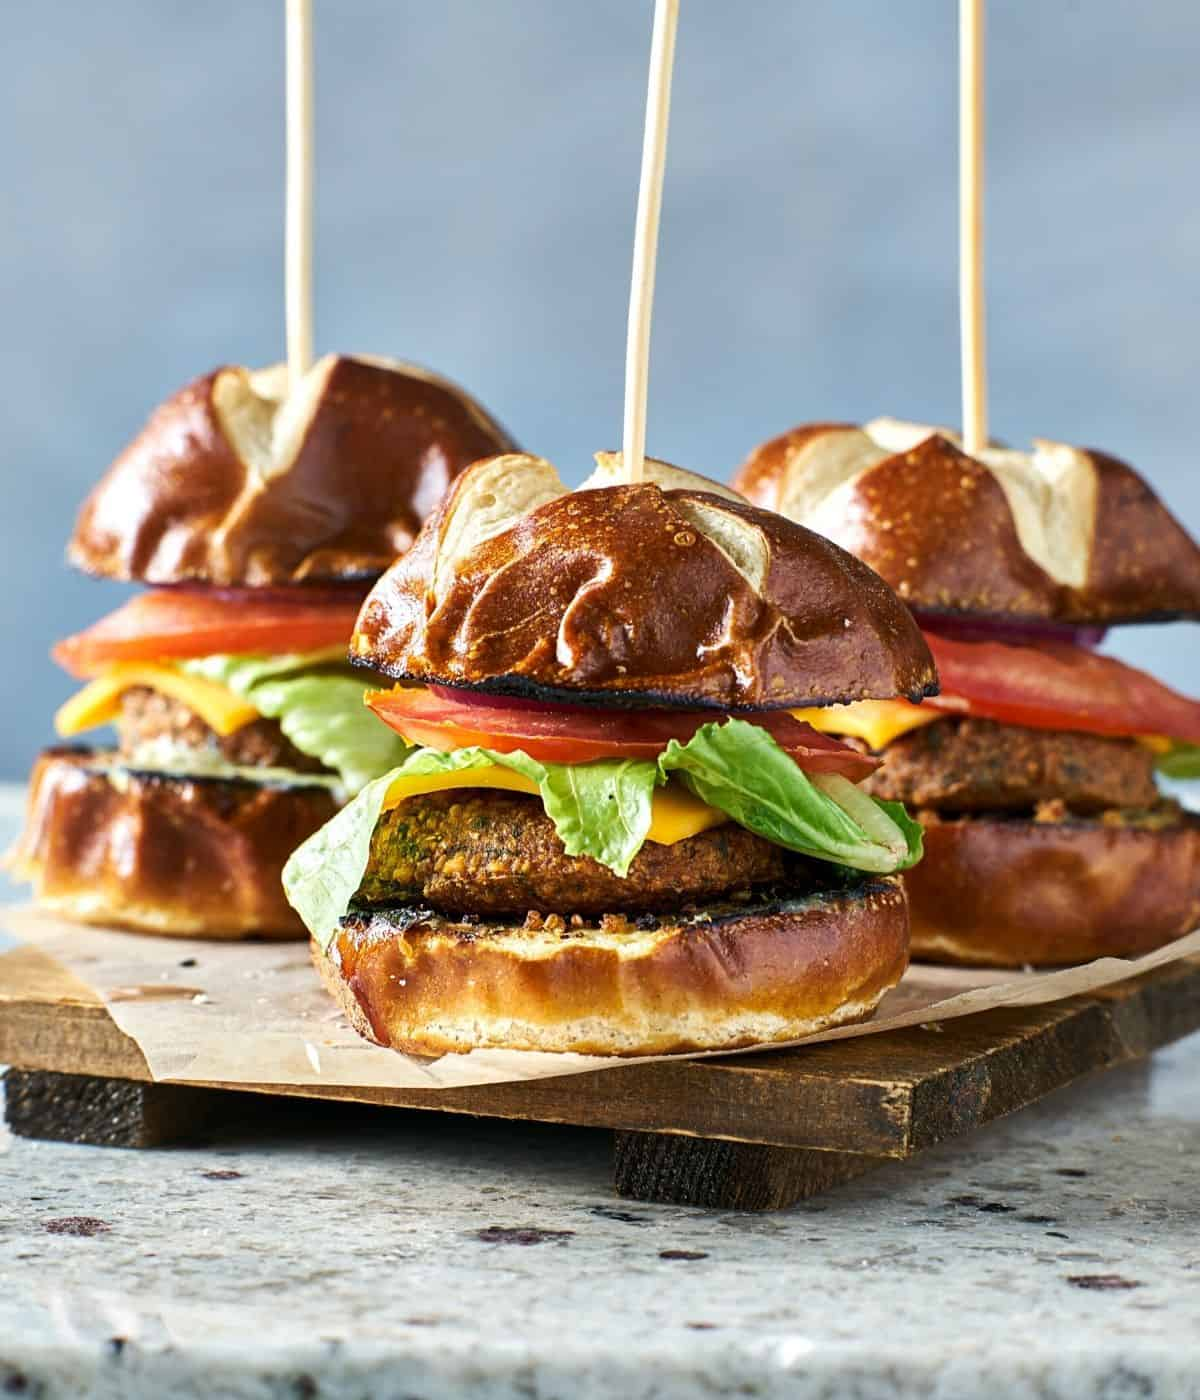 Mini party sandwich sliders on a wood plank with skewers.